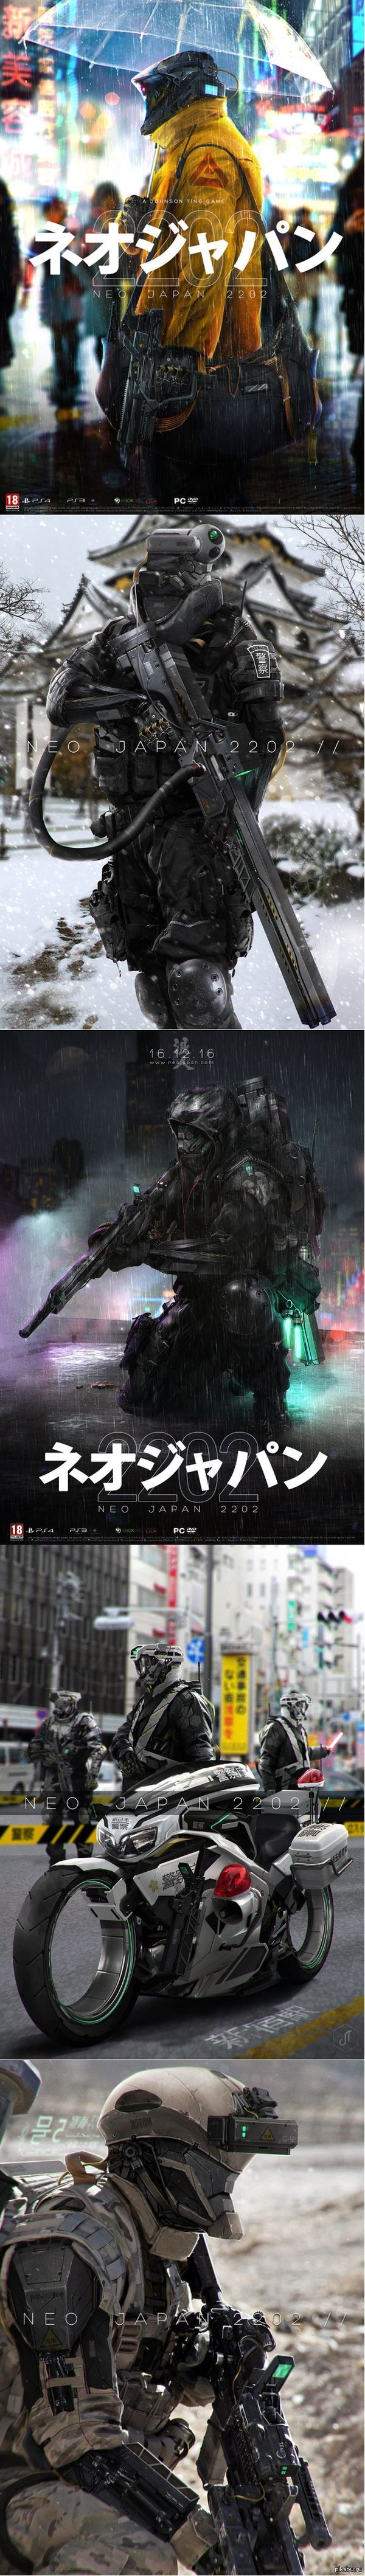 NEO JAPAN 2202 by Johnsonting deviant art. http://johnsonting.deviantart.com/art/NEO-JAPAN-2202-KIKAI-YOHEI-436385738: